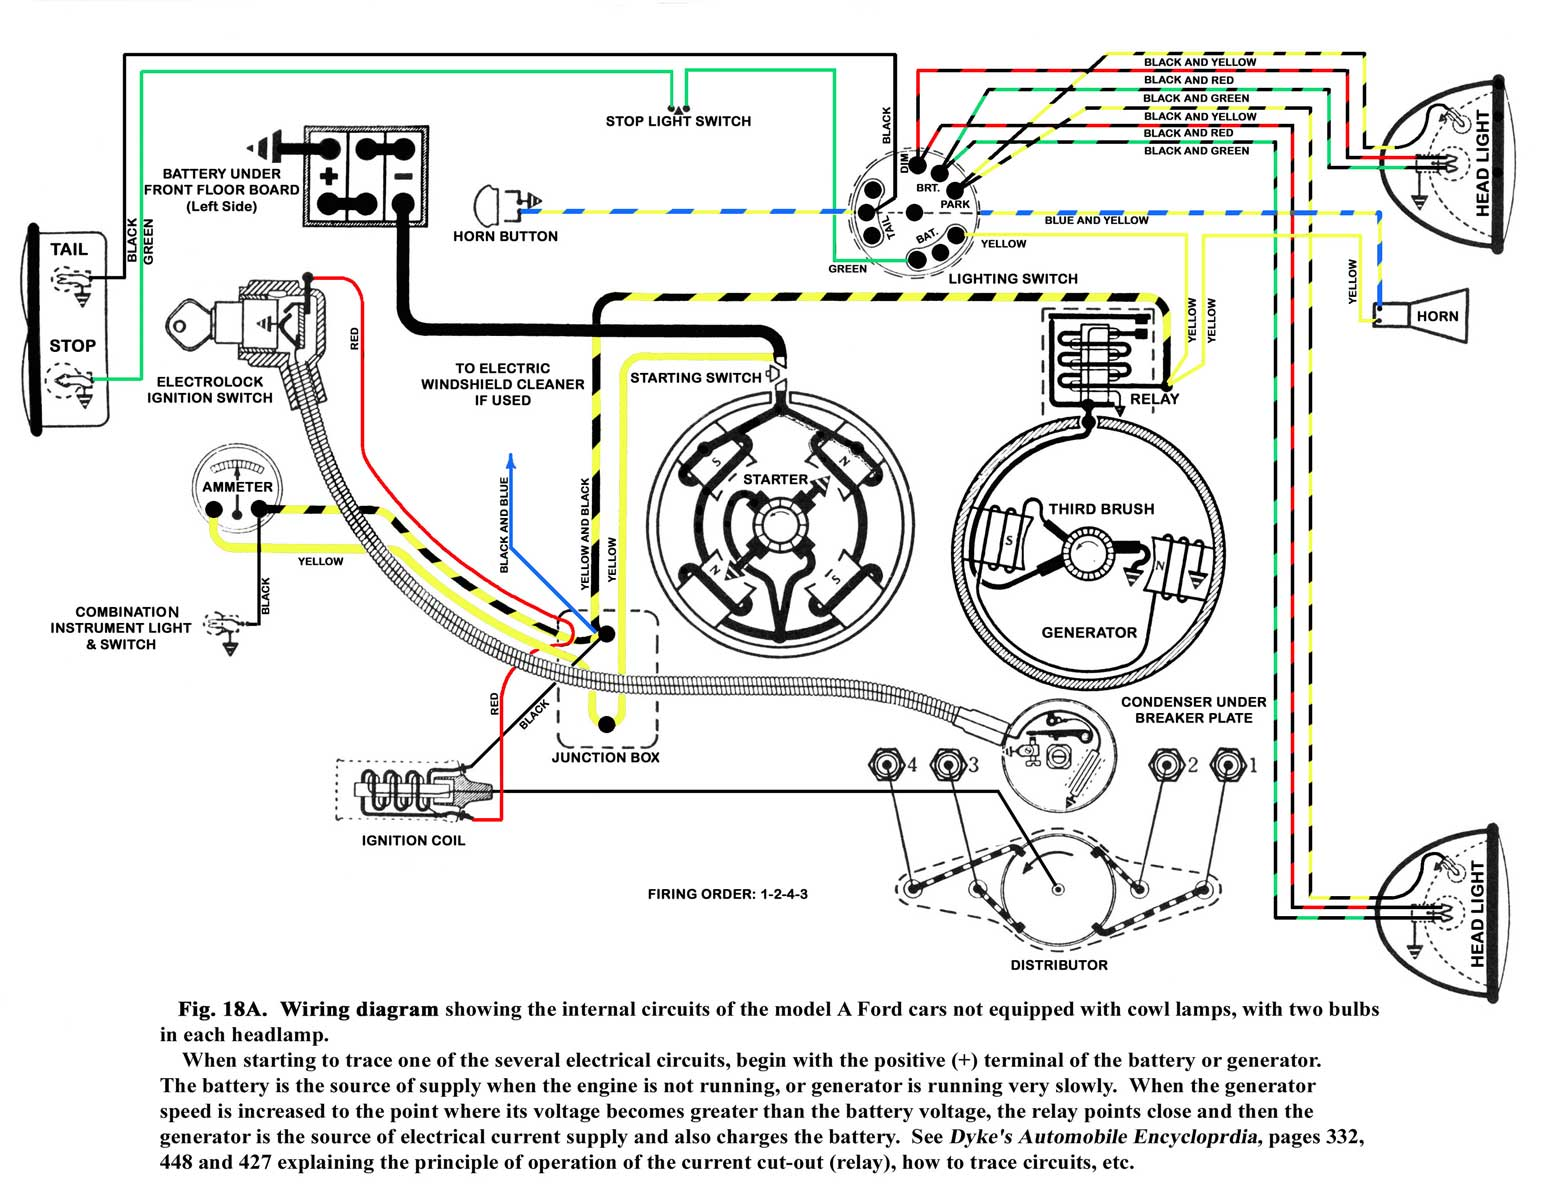 ford model a wiring diagram free download wiring diagram rh satsa co CCTV Camera Wiring Diagram 1970 Ford F100 Wiring Diagram